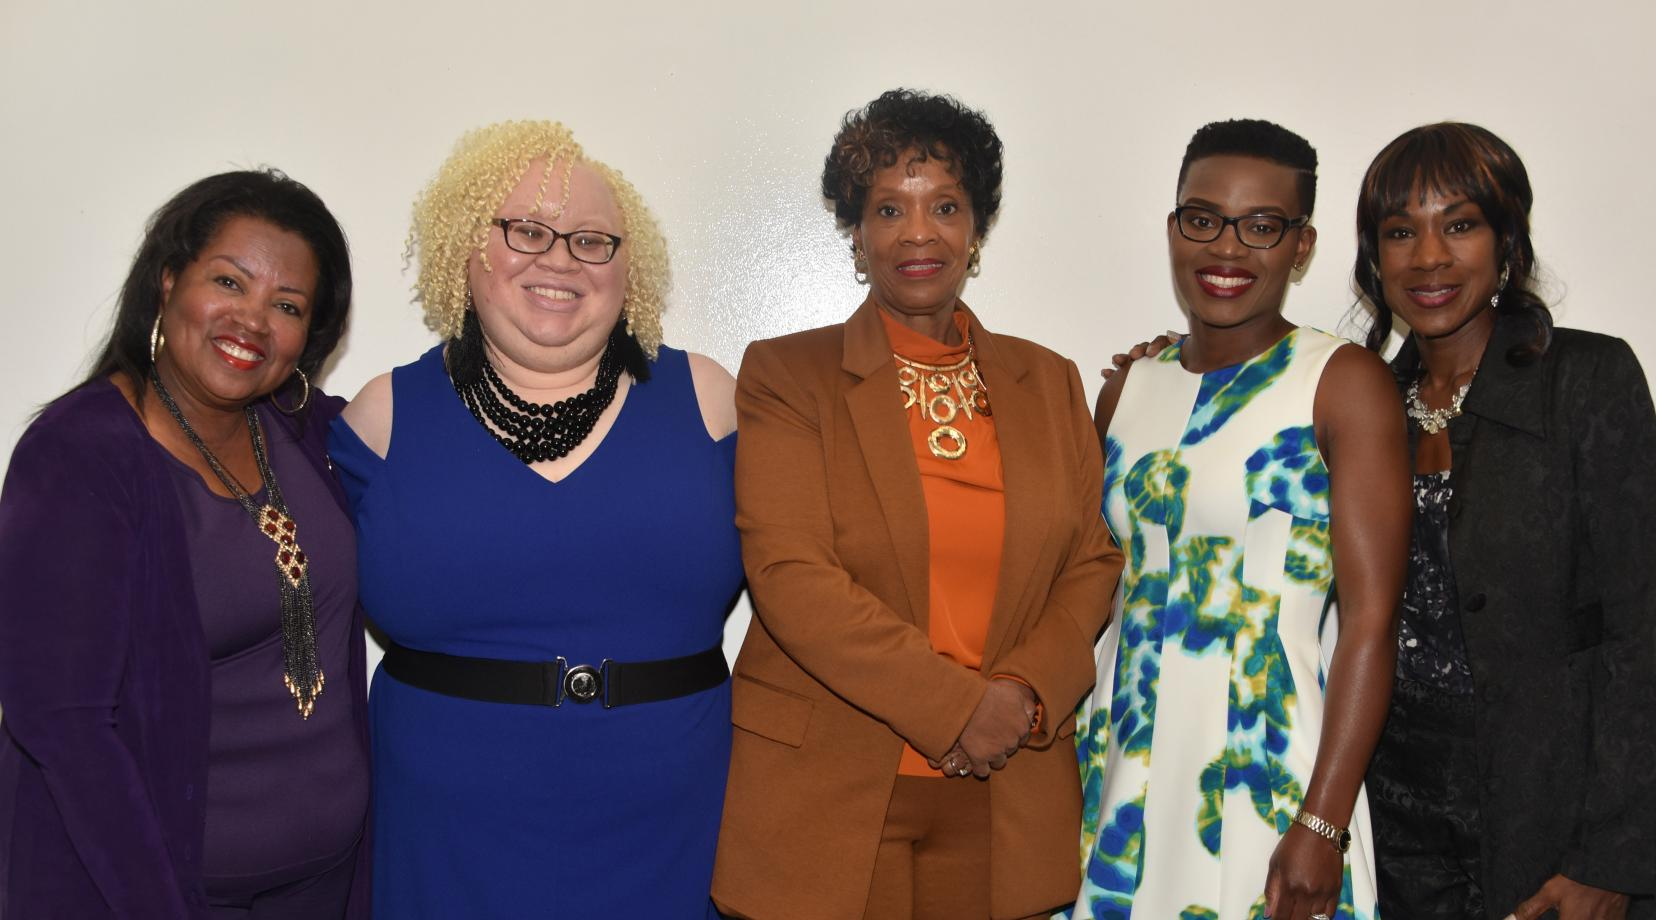 (L-r) Dr. Devona Williams, DSU Board of Trustees chairperson, Sara Crawford-Jones, director of the Women's Business Center, of True Access Capital, Audrey Scott-Hynson, owner of A. Scott Enterprises, Linda Arrey keynote speaker, and Lillie Crawford, event organizer, gather for a photo during the Women's Entrepreneurship Week observance at the University.